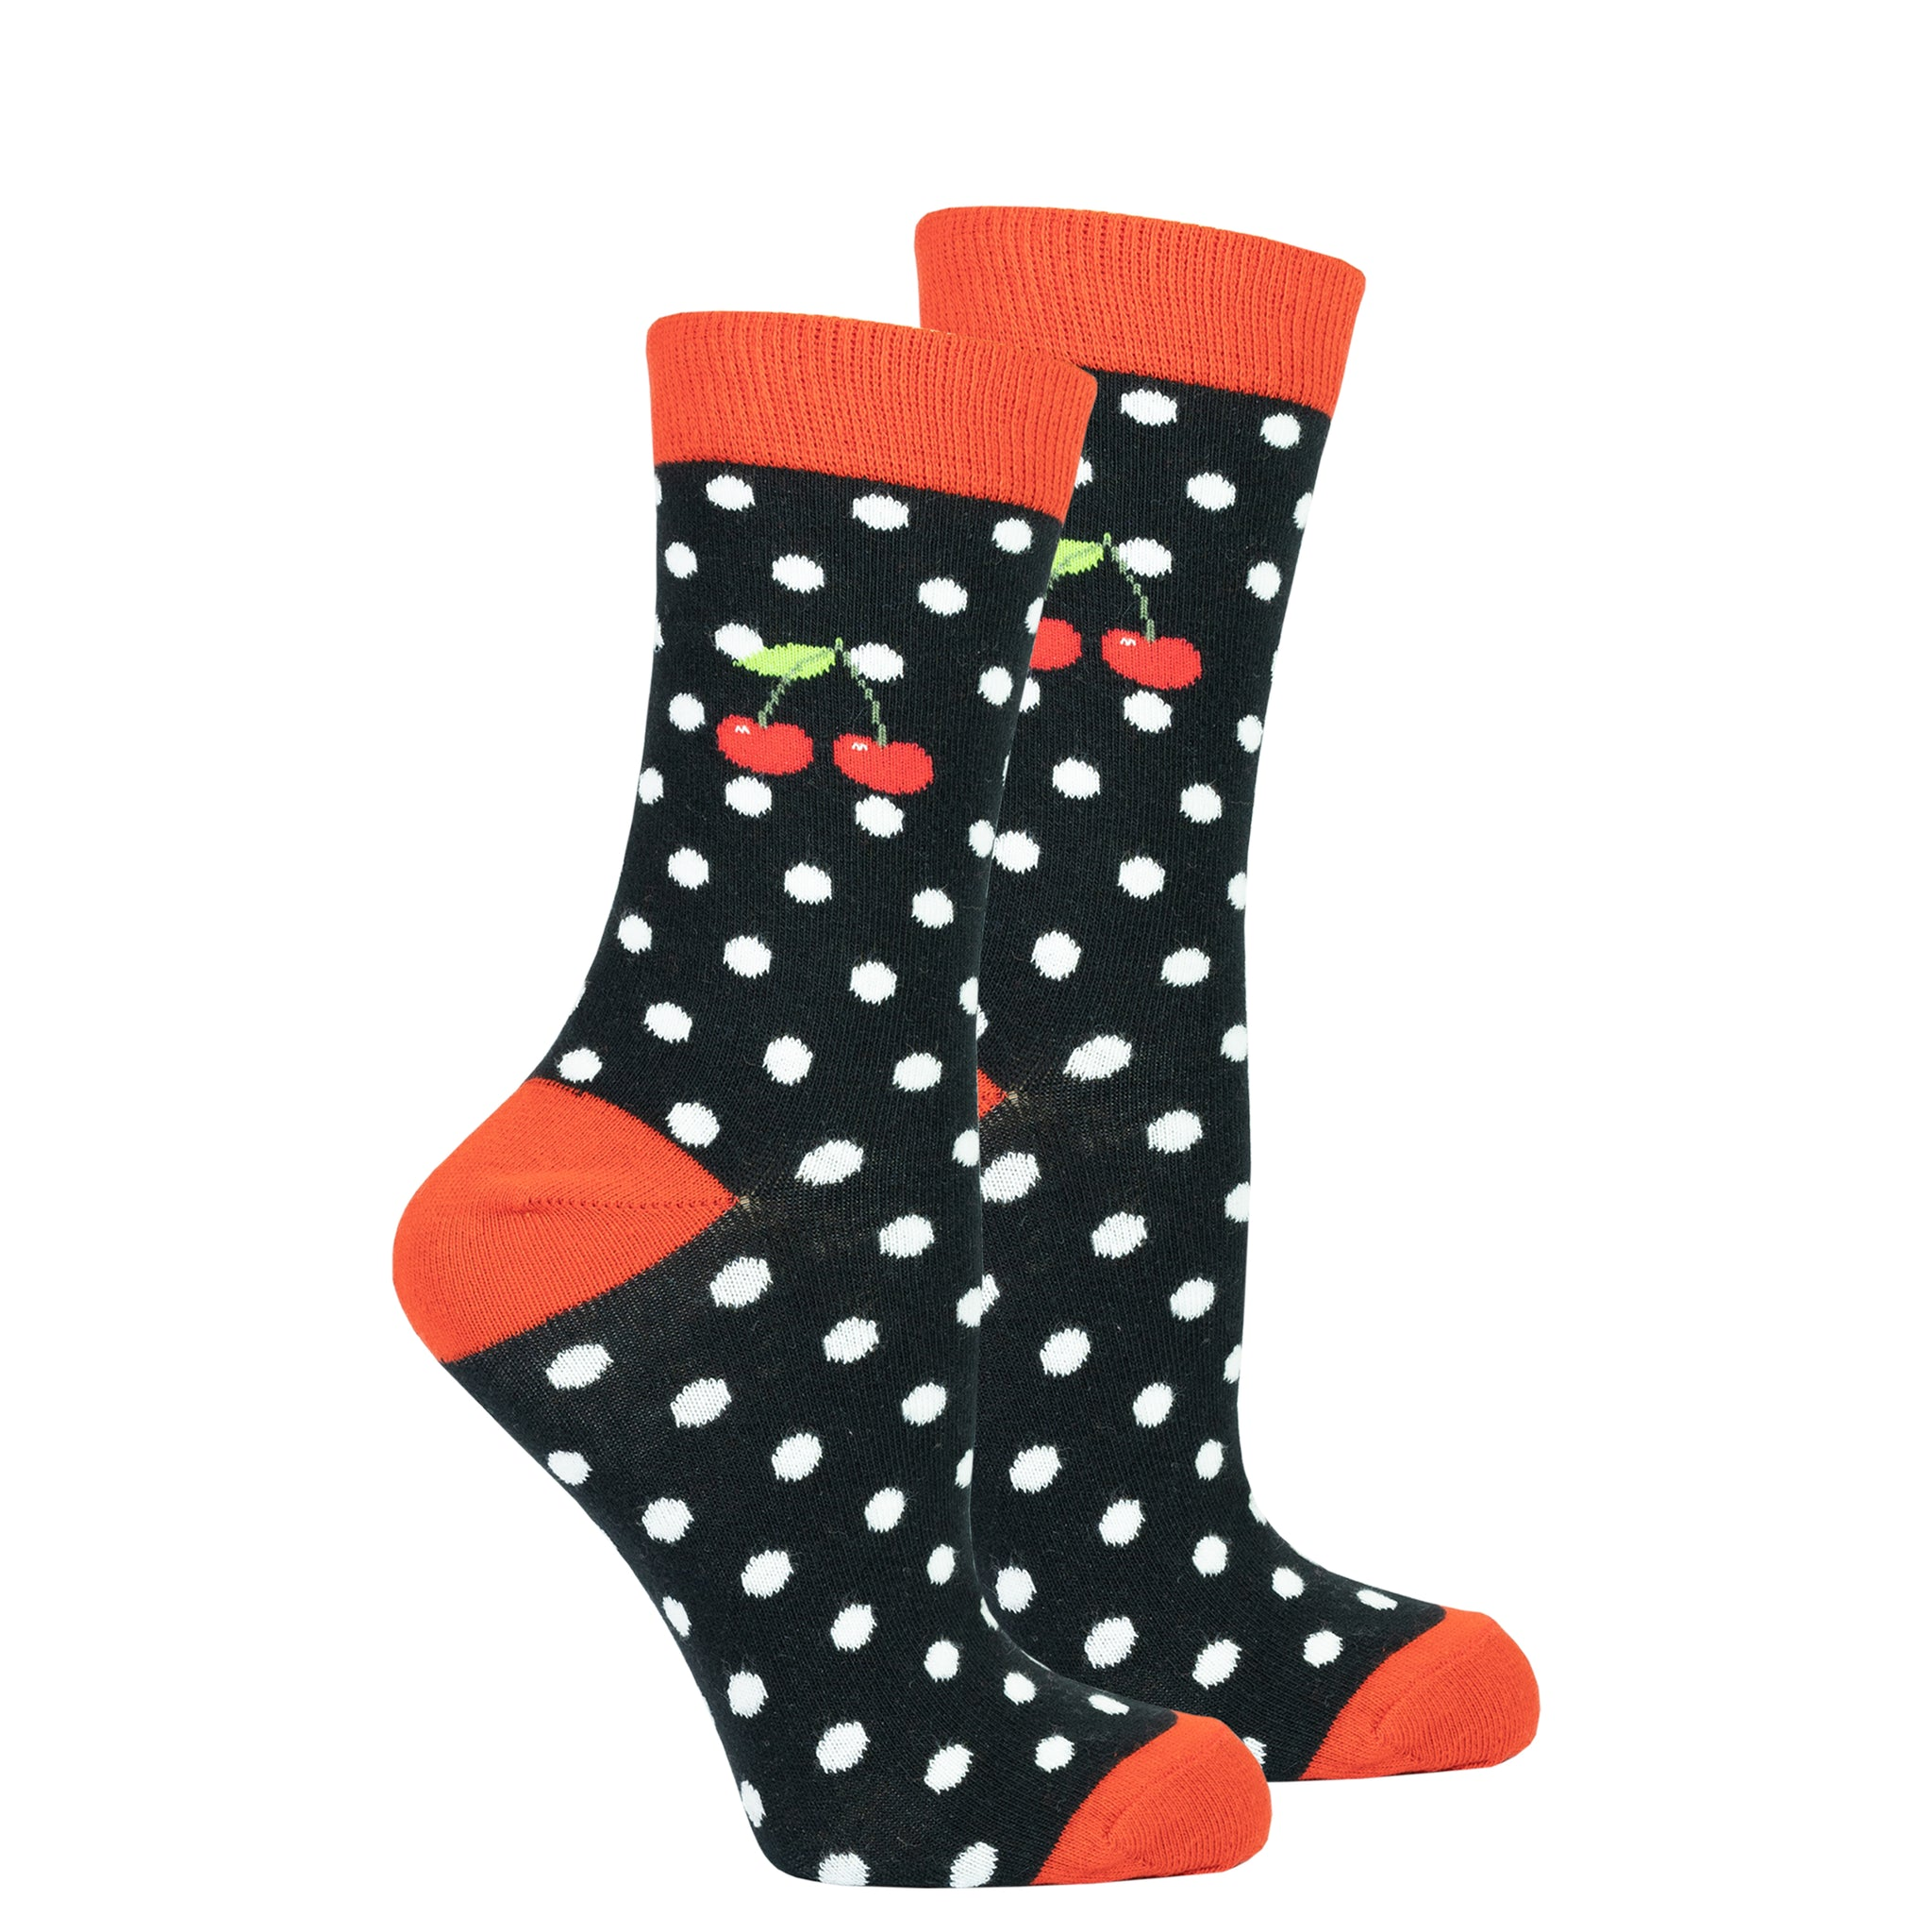 Women's Cherry Dot Socks